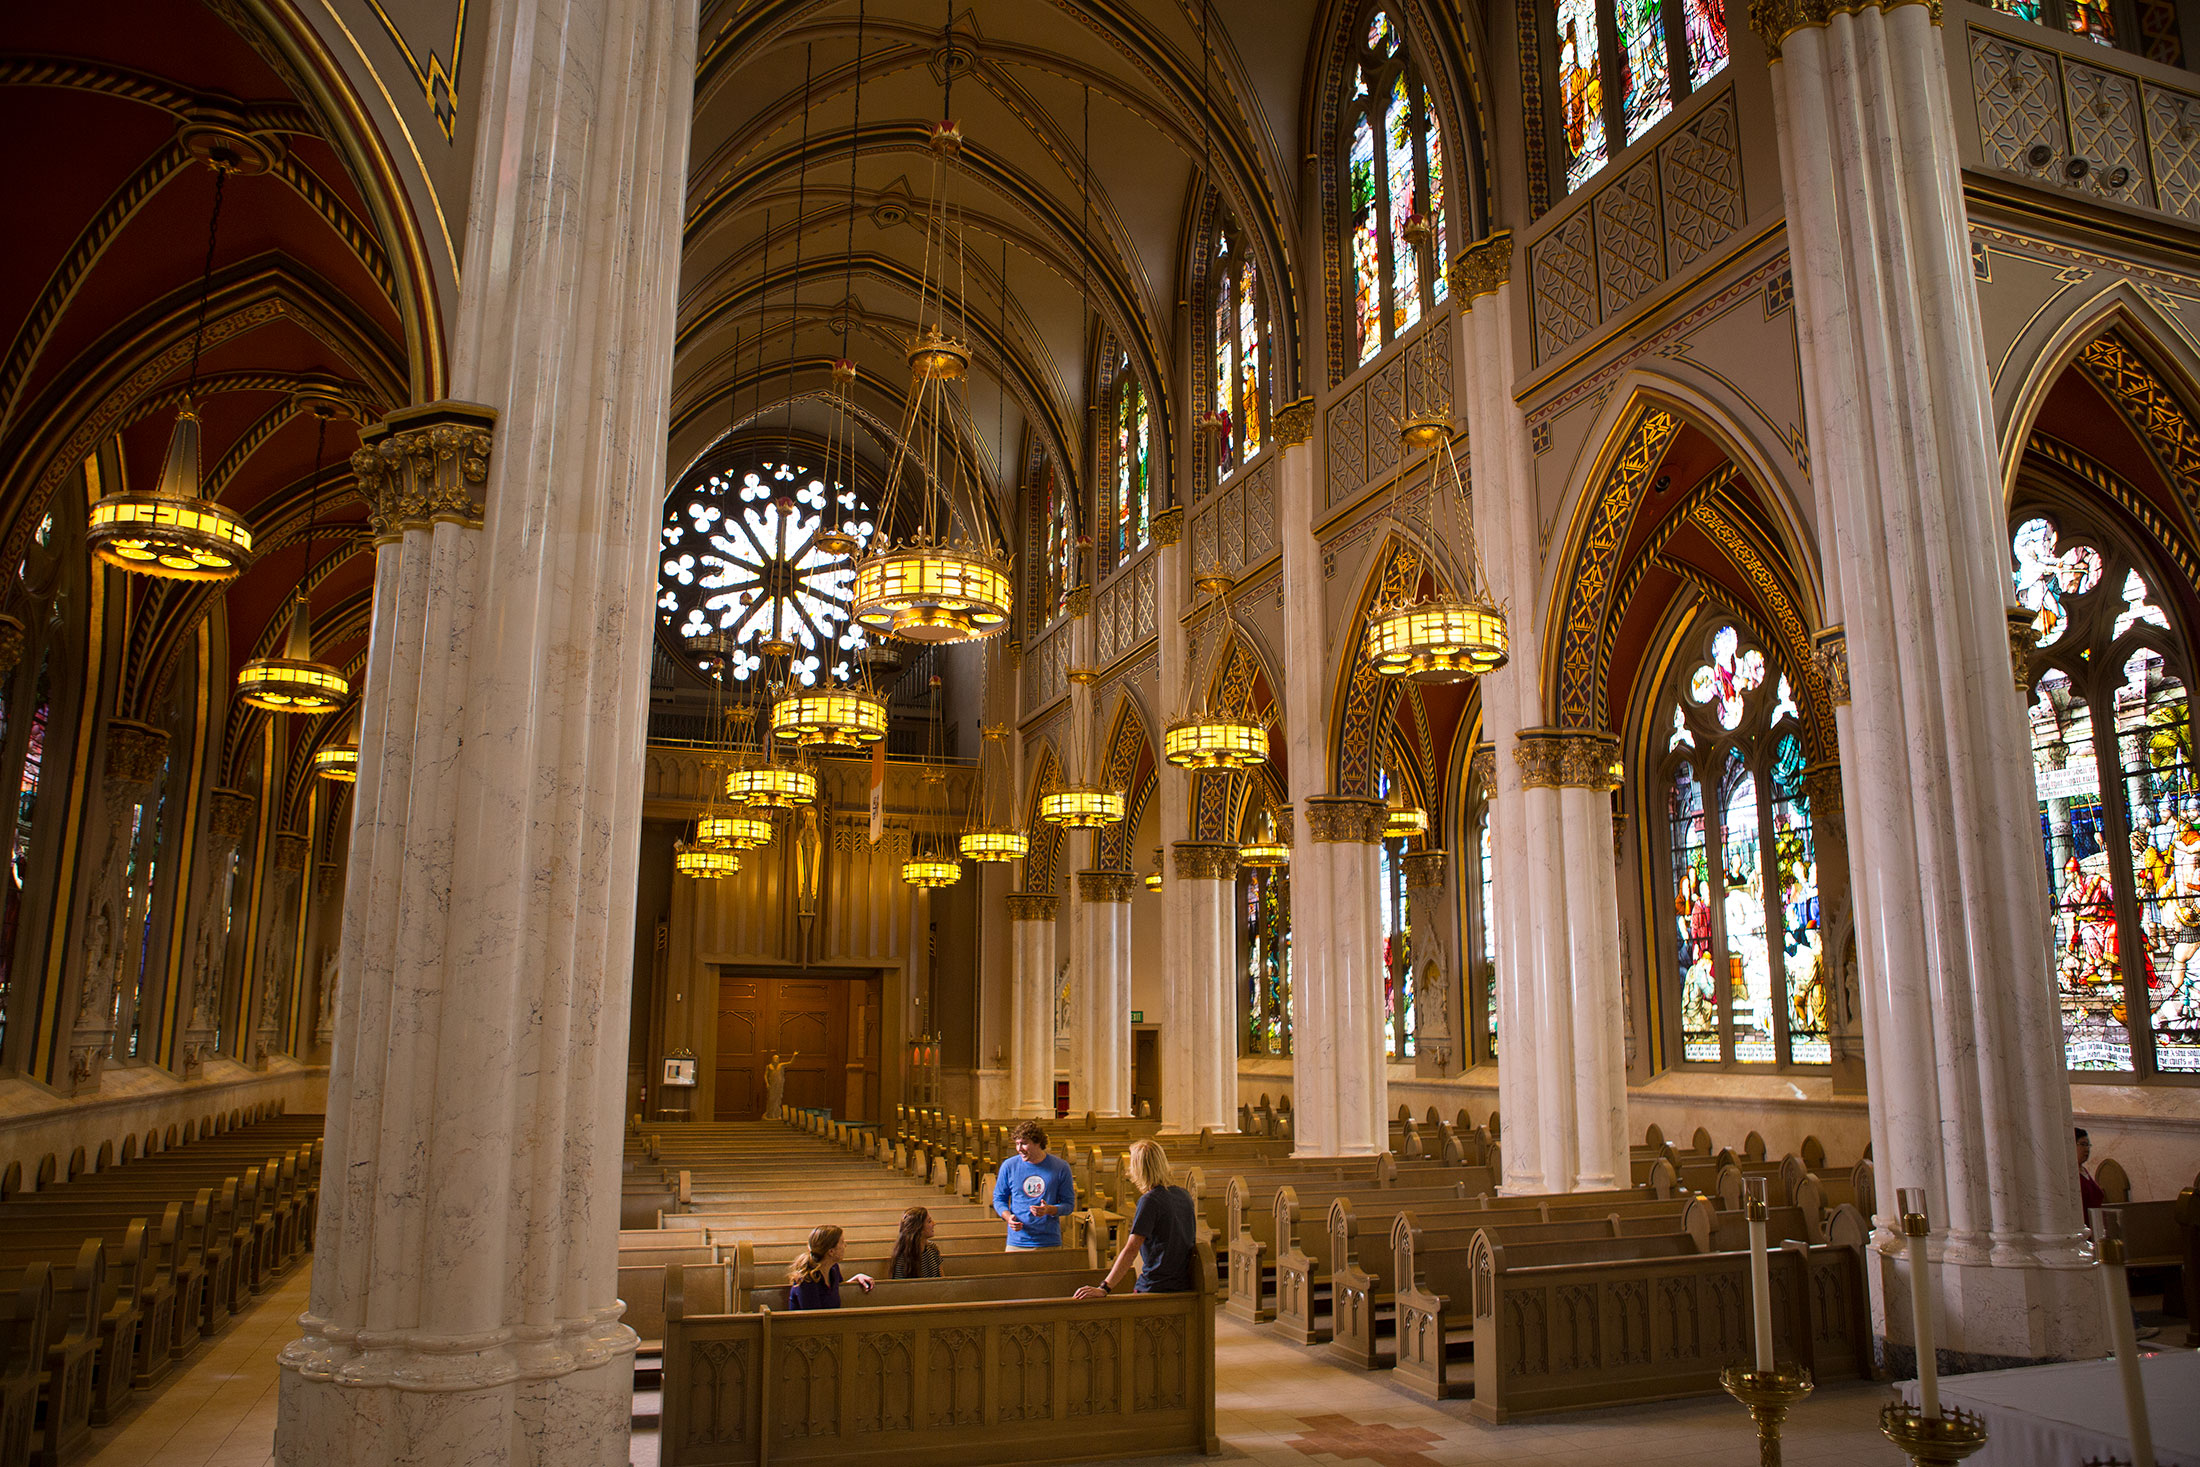 Interior of the Cathedral of St. Helena in Helena, MT